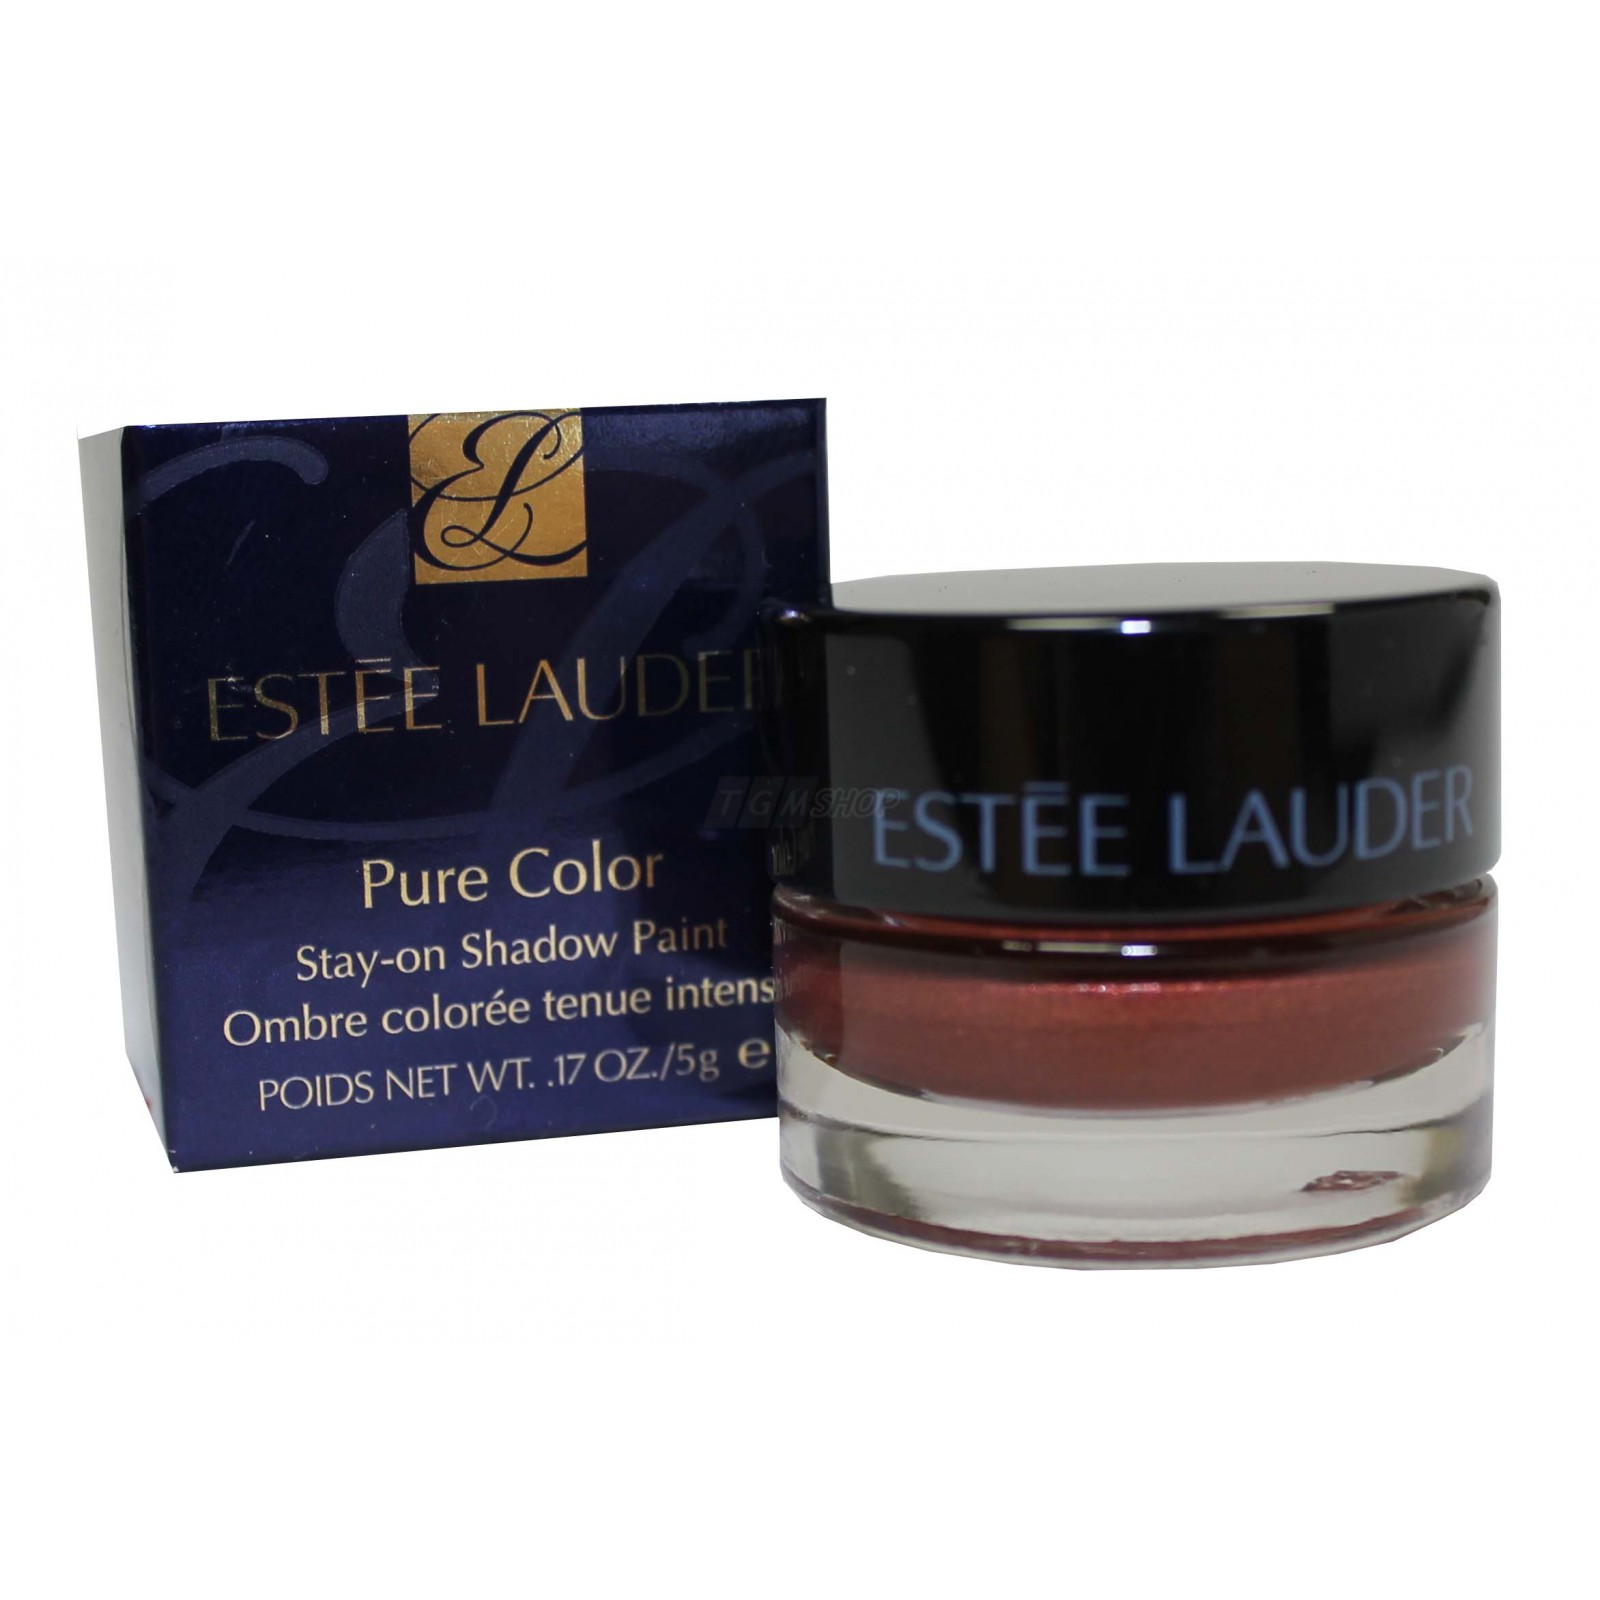 Estee Lauder - Pure Color - Stay-On Shadow Paint Creme Lidschatten - Make up  5g - 06 Cosmic